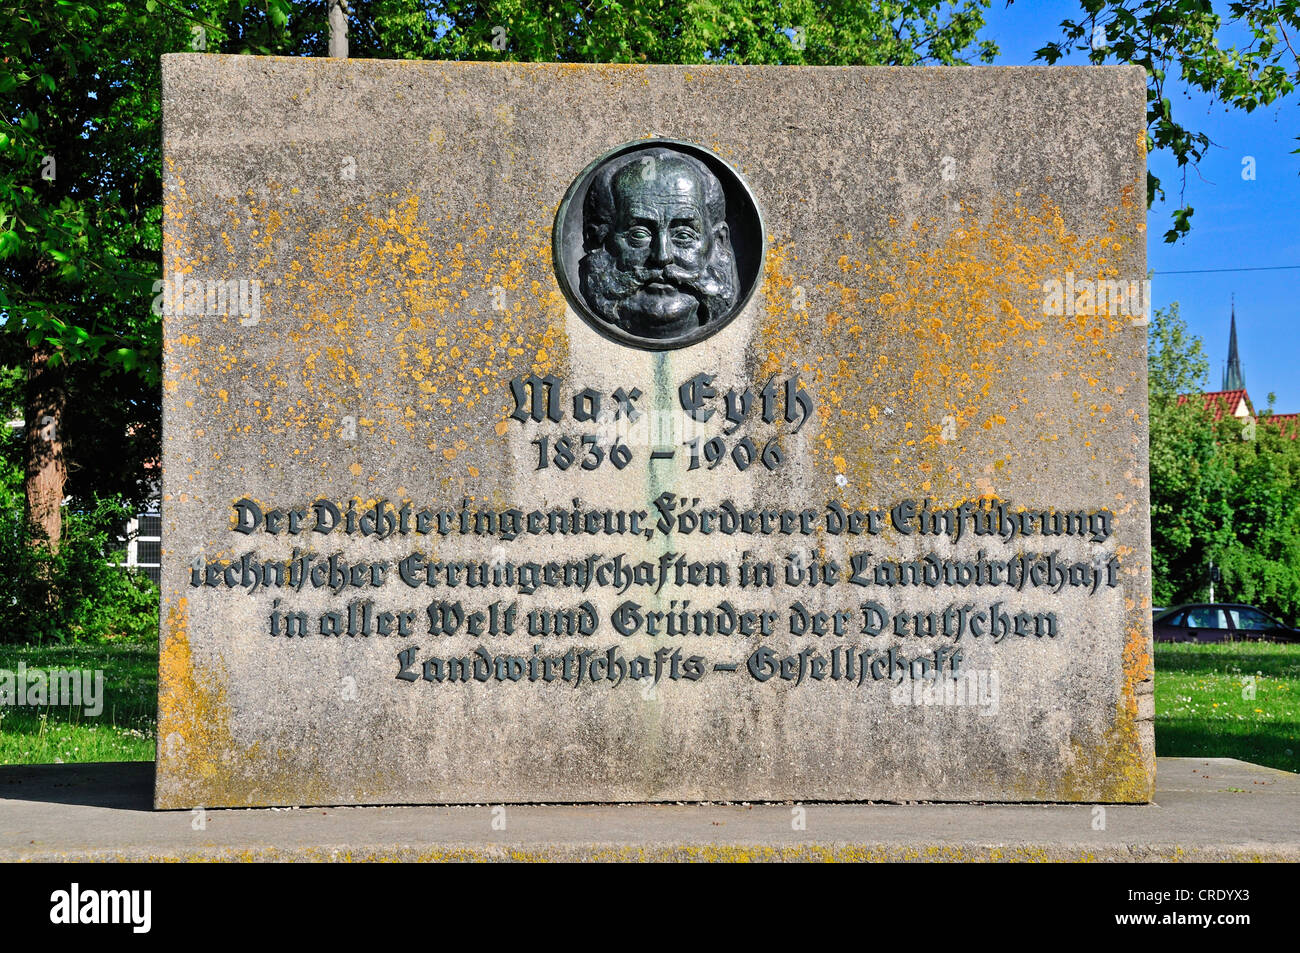 Max Eyth monument, Adlerbastei, this is where the 'Tailor of Ulm' started his flight test, Ulm, Baden-Wuerttemberg - Stock Image